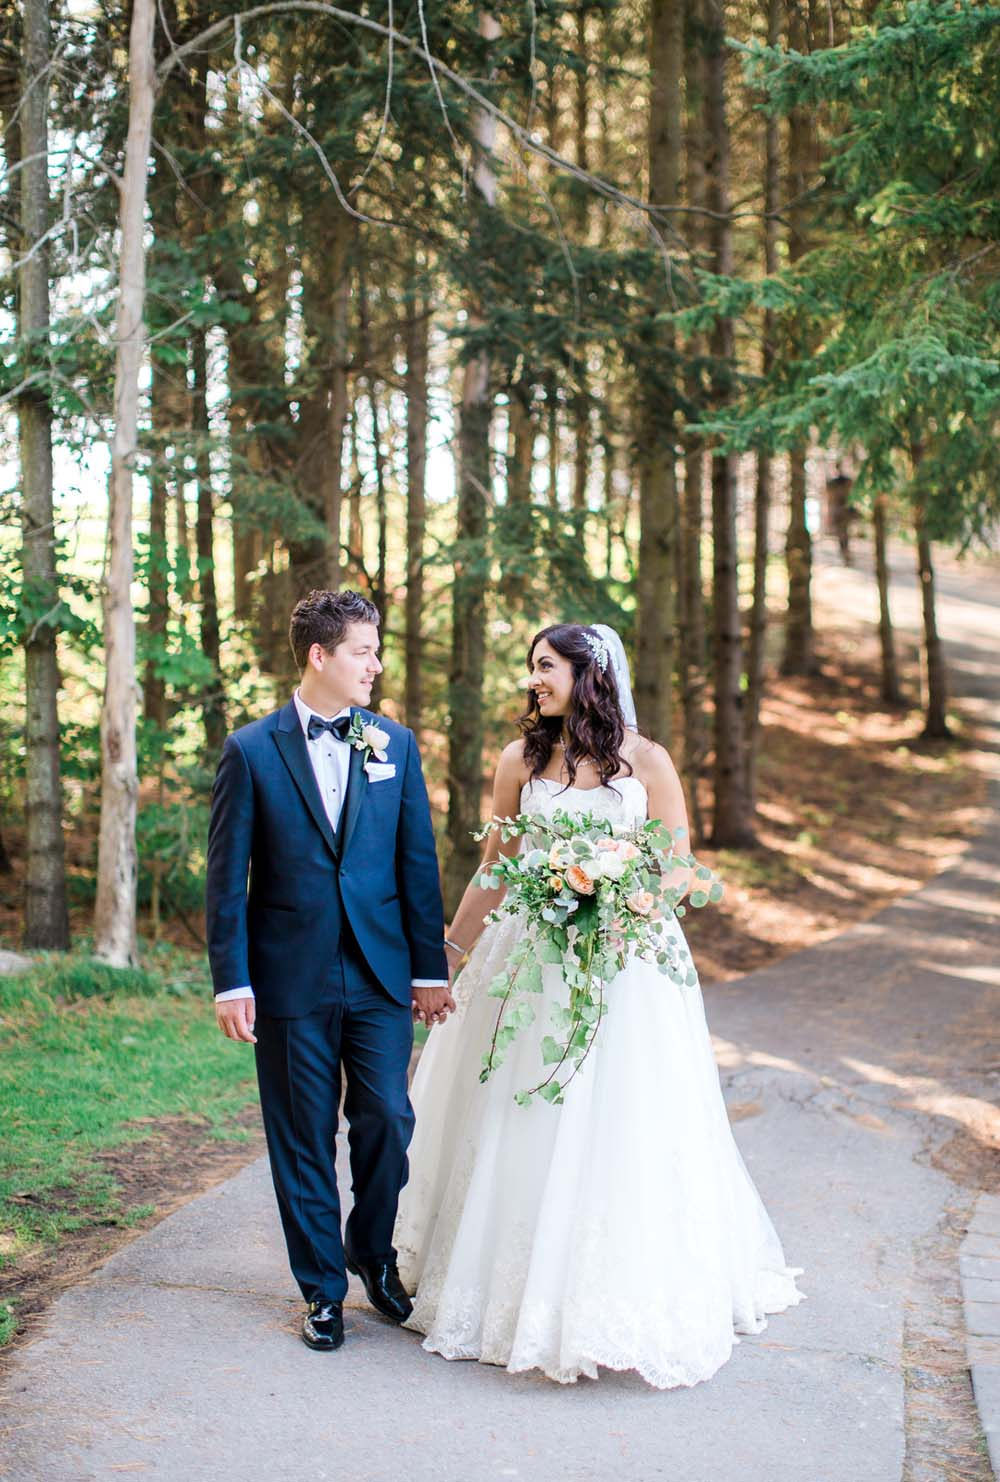 A Rustic, Whimsical Wedding in Tottenham - Bride and groom